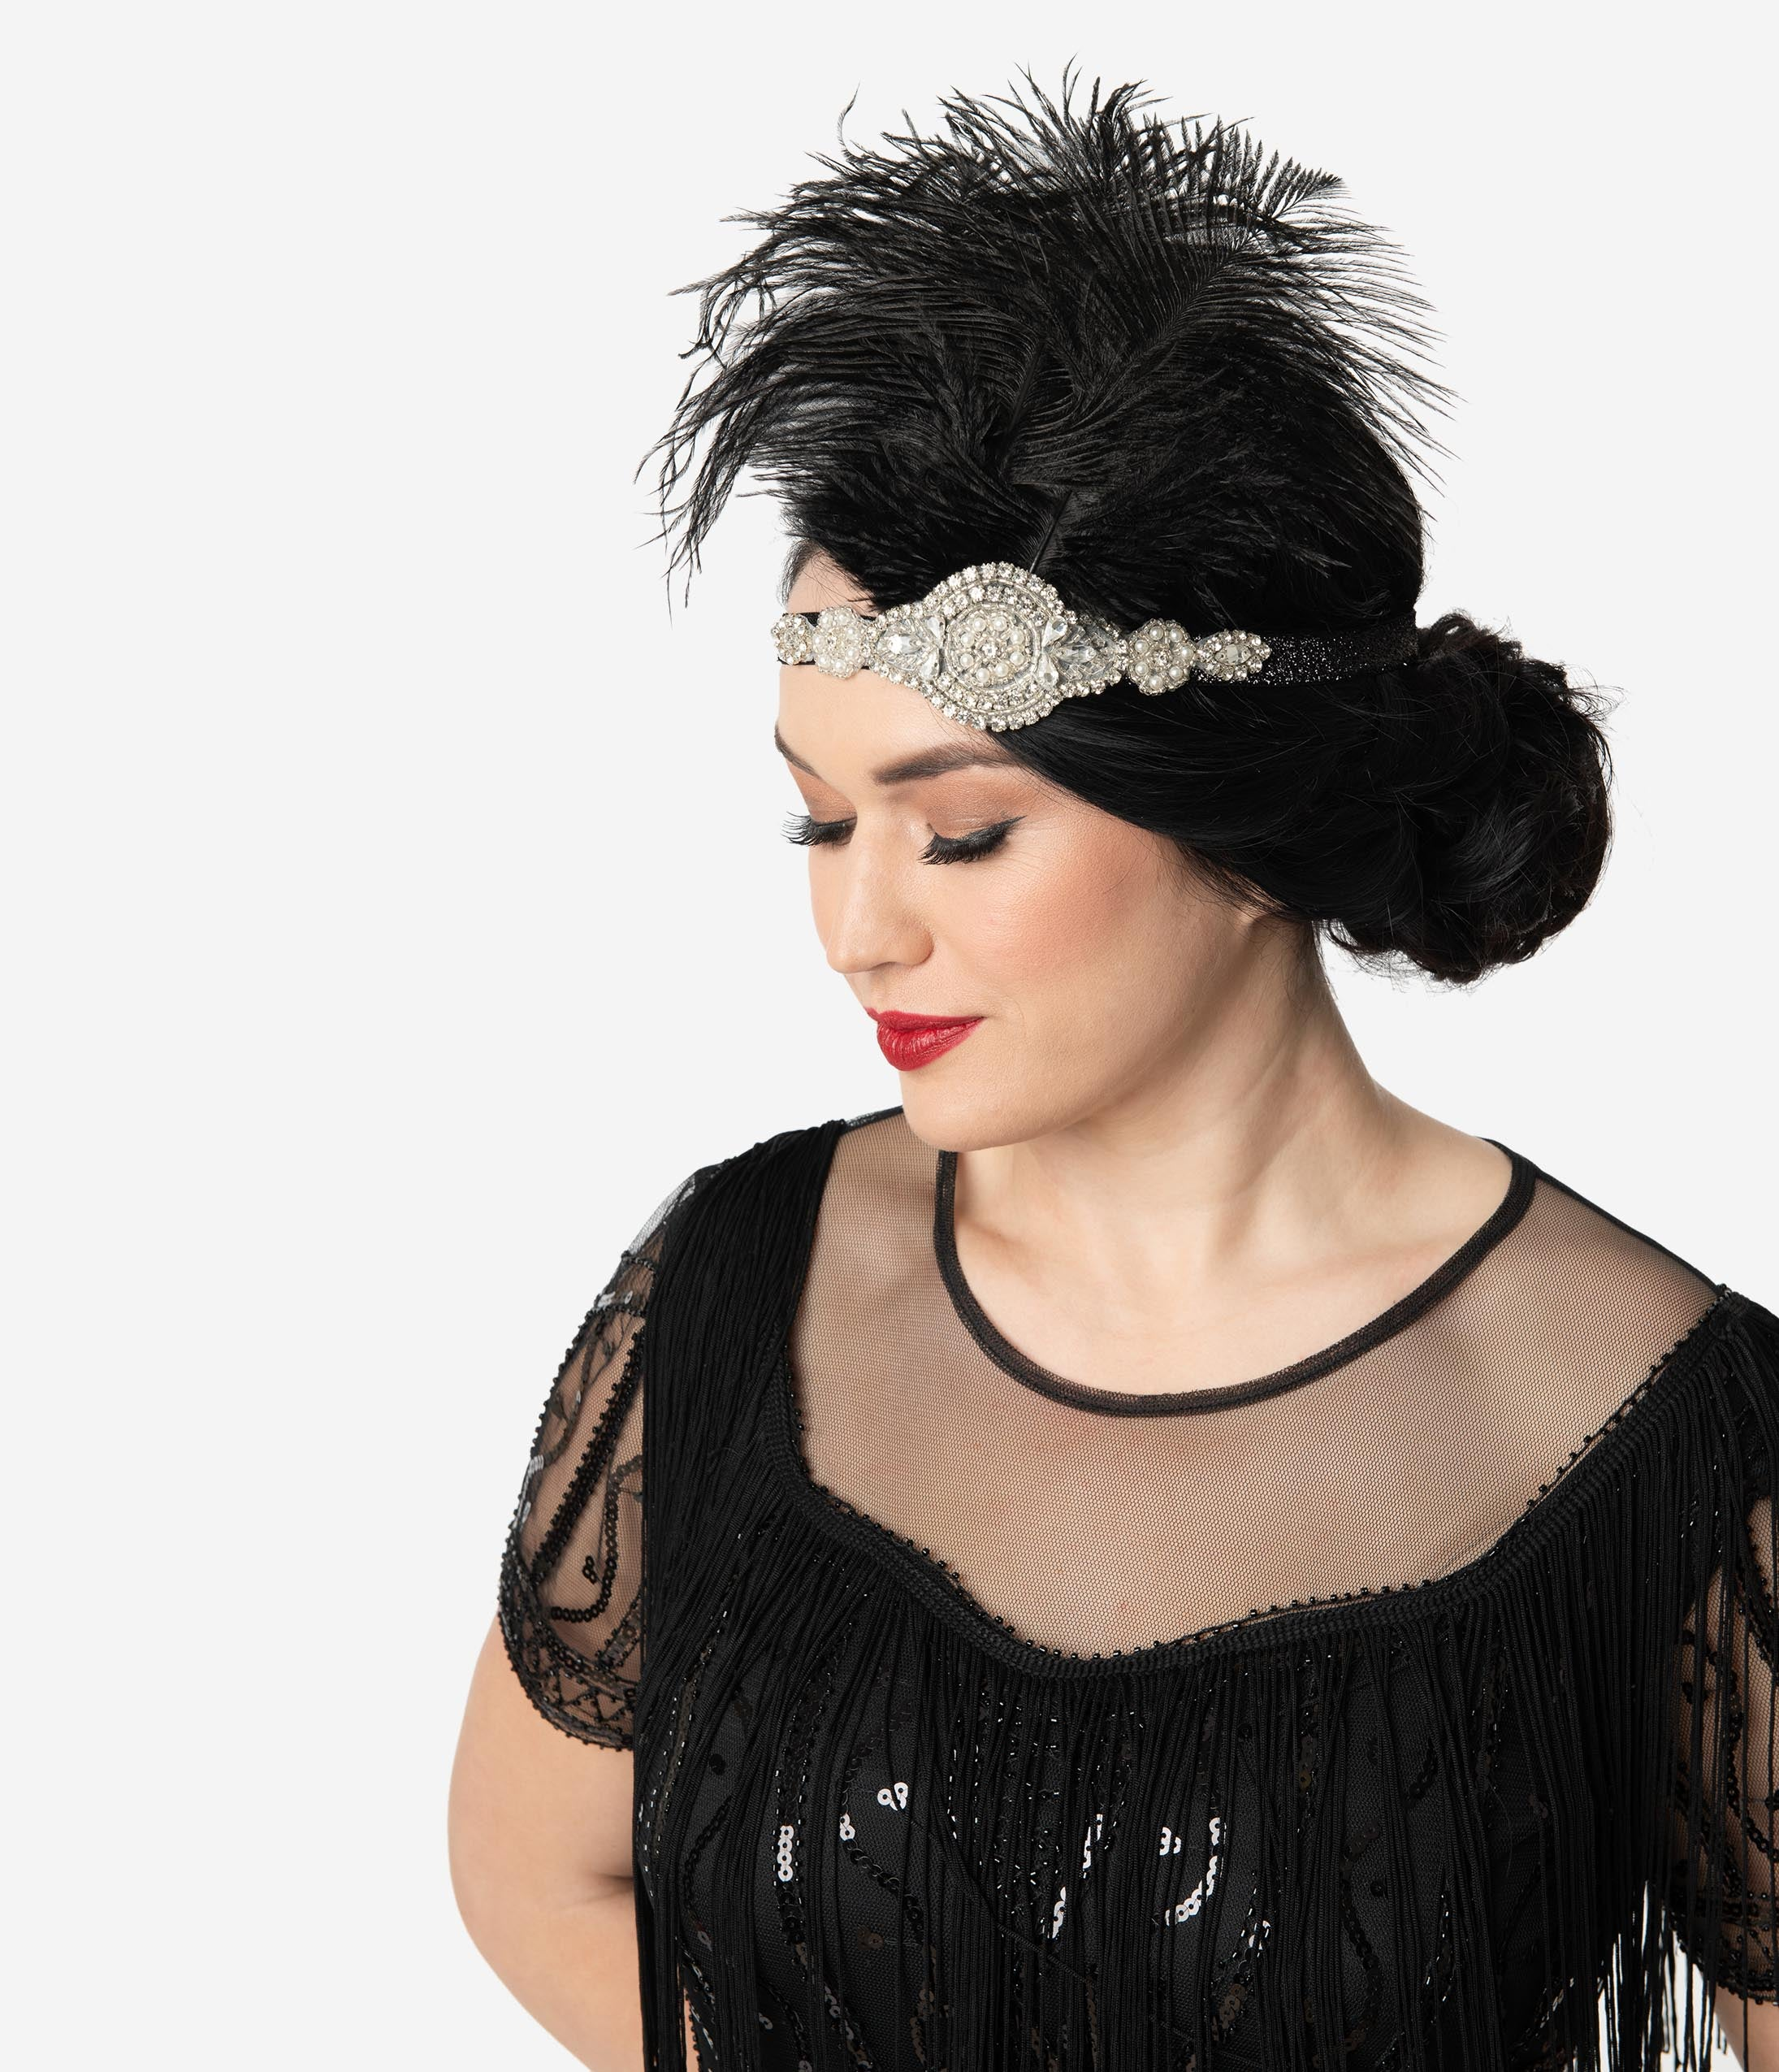 1920s Fashion & Clothing | Roaring 20s Attire Unique Vintage Black Feathers  Silver Crystal Beaded Flapper Headband $32.00 AT vintagedancer.com